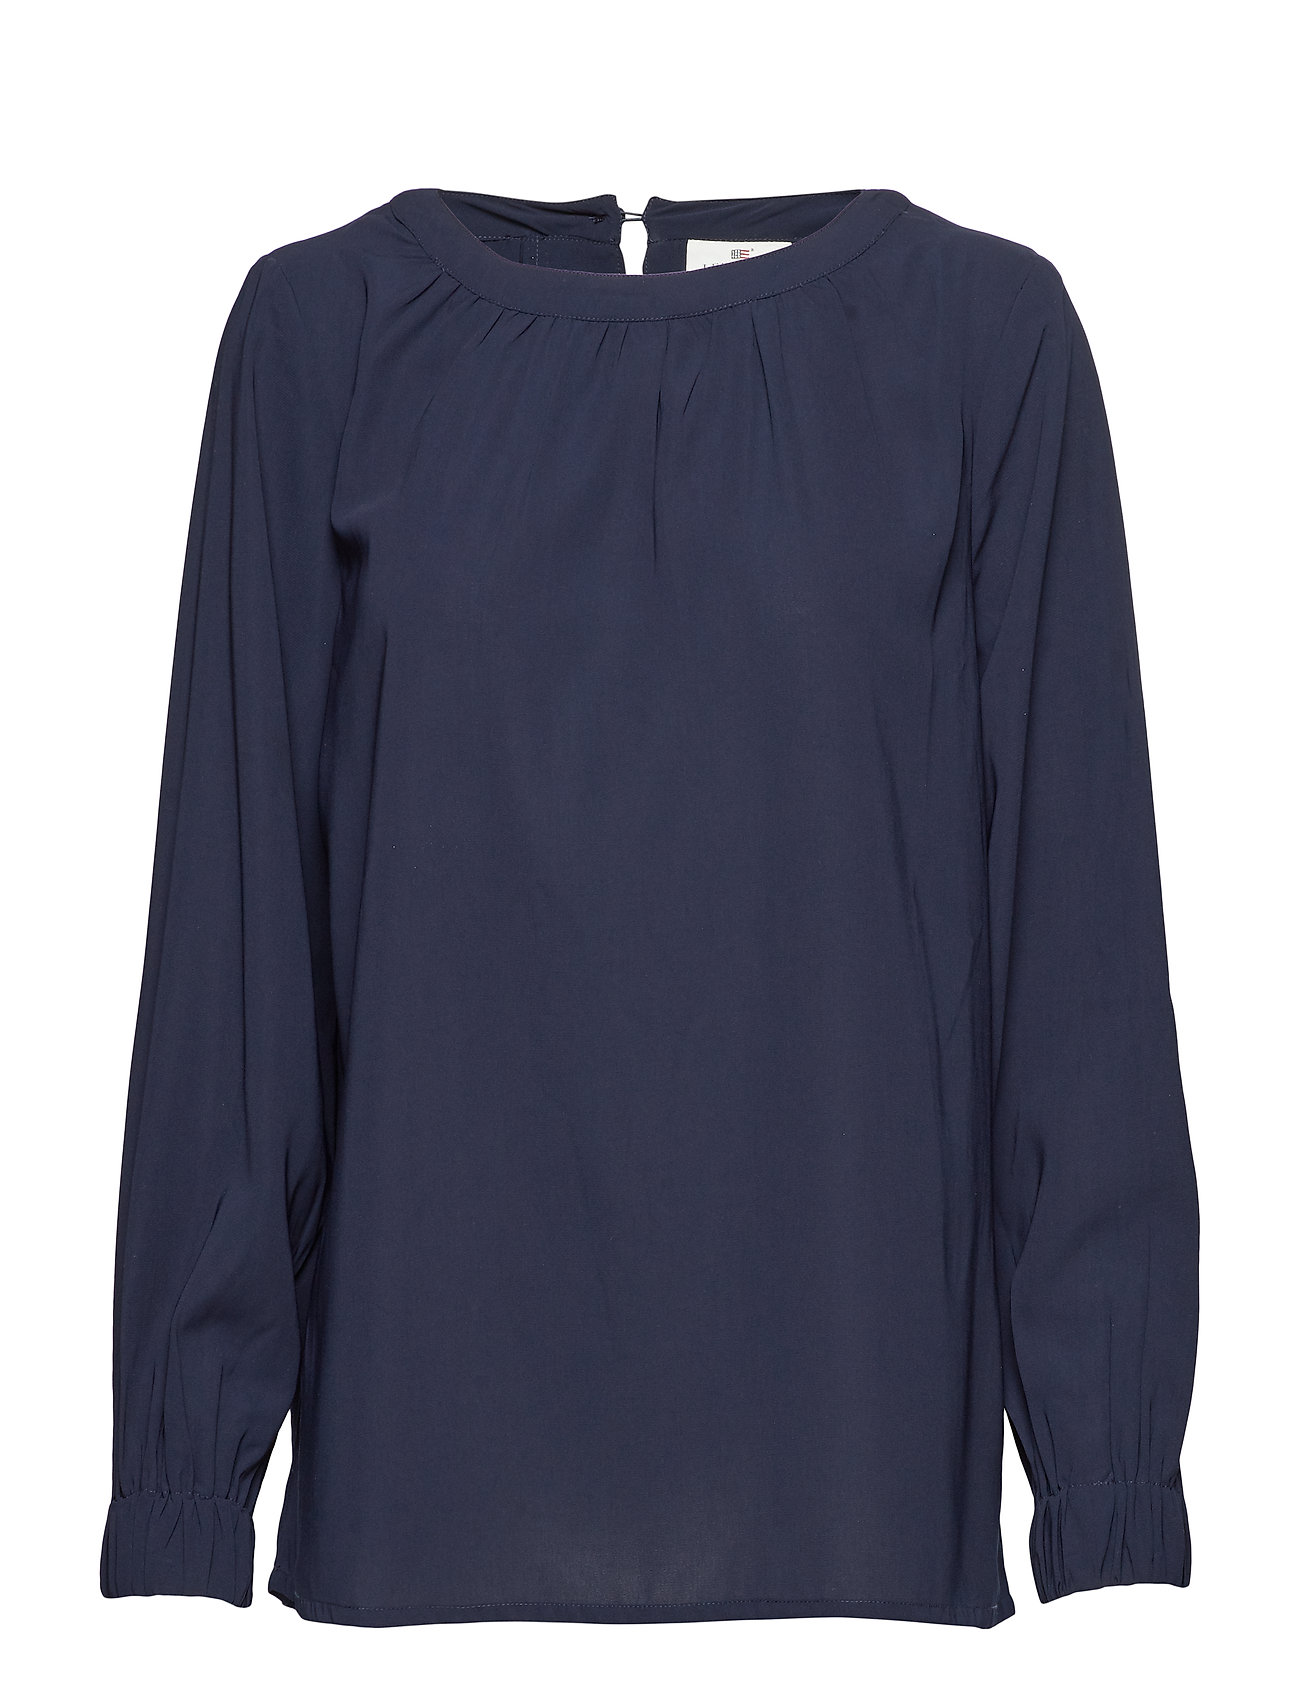 Lexington Clothing Mercer Blouse - NAVY BLUE